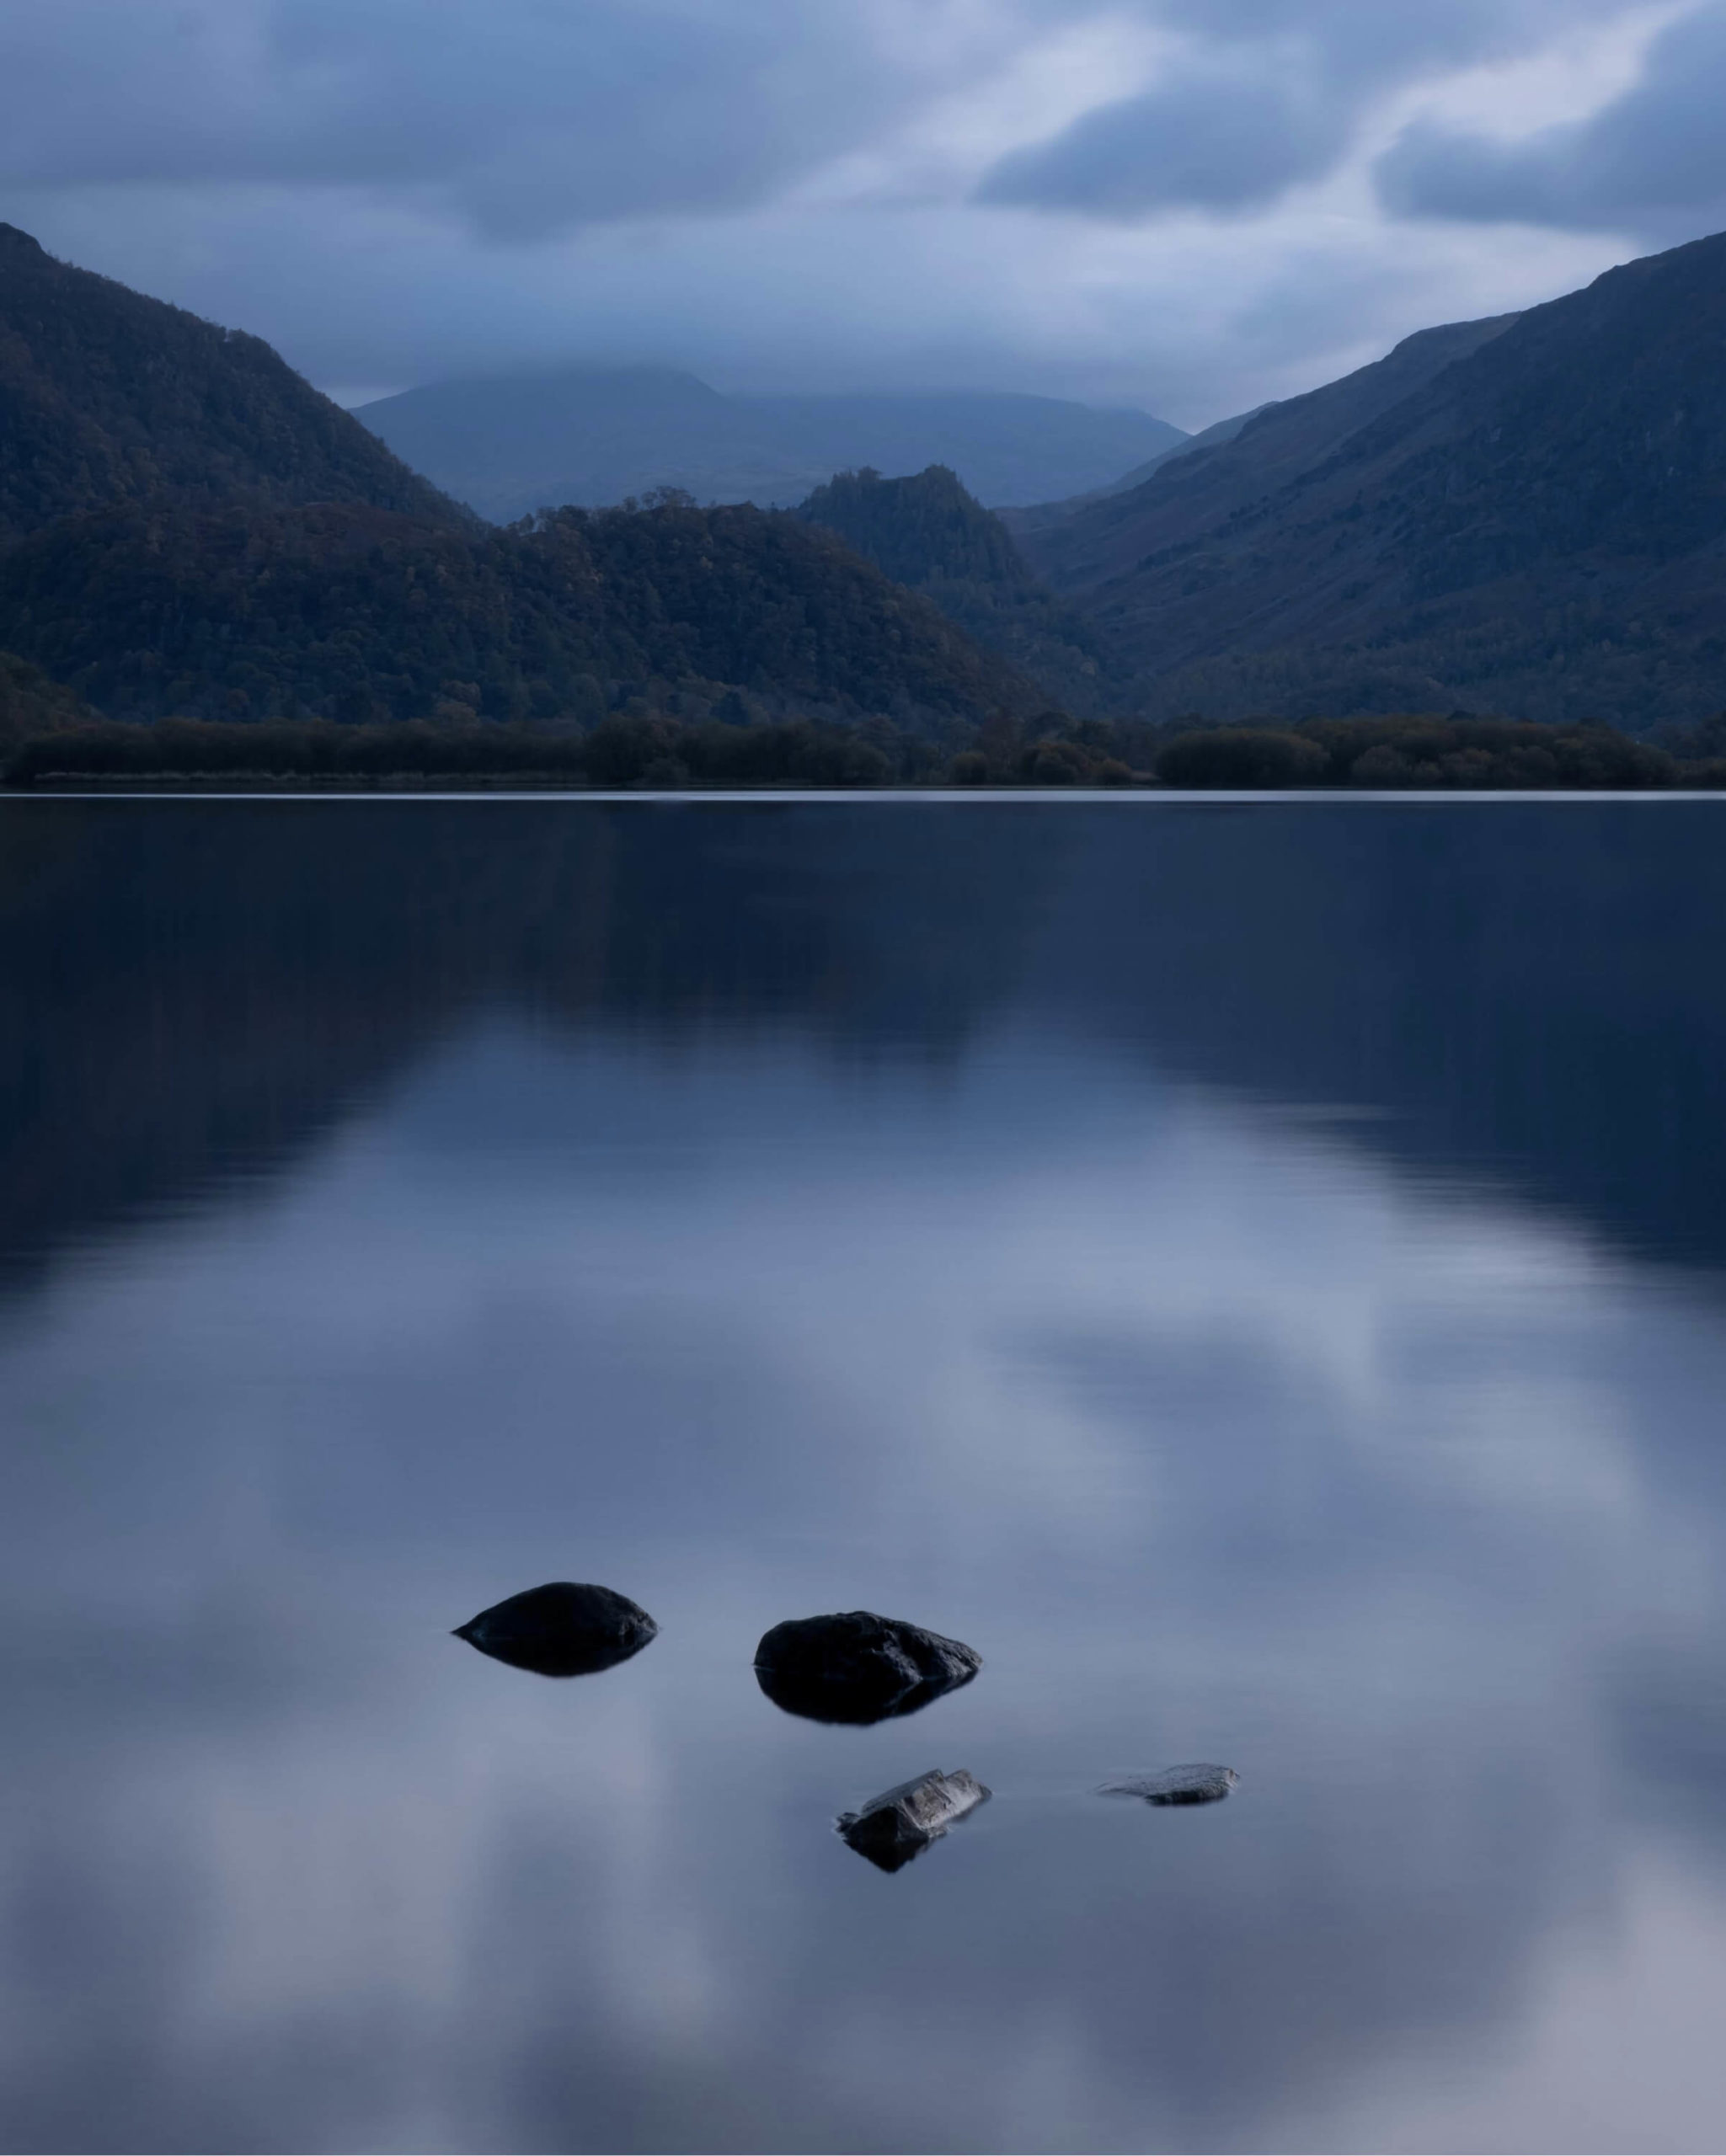 A small arrangement of four smooth stones sit in a still lake at blue hour. In the distance, mountains covered in trees are reflected in the water's surface.